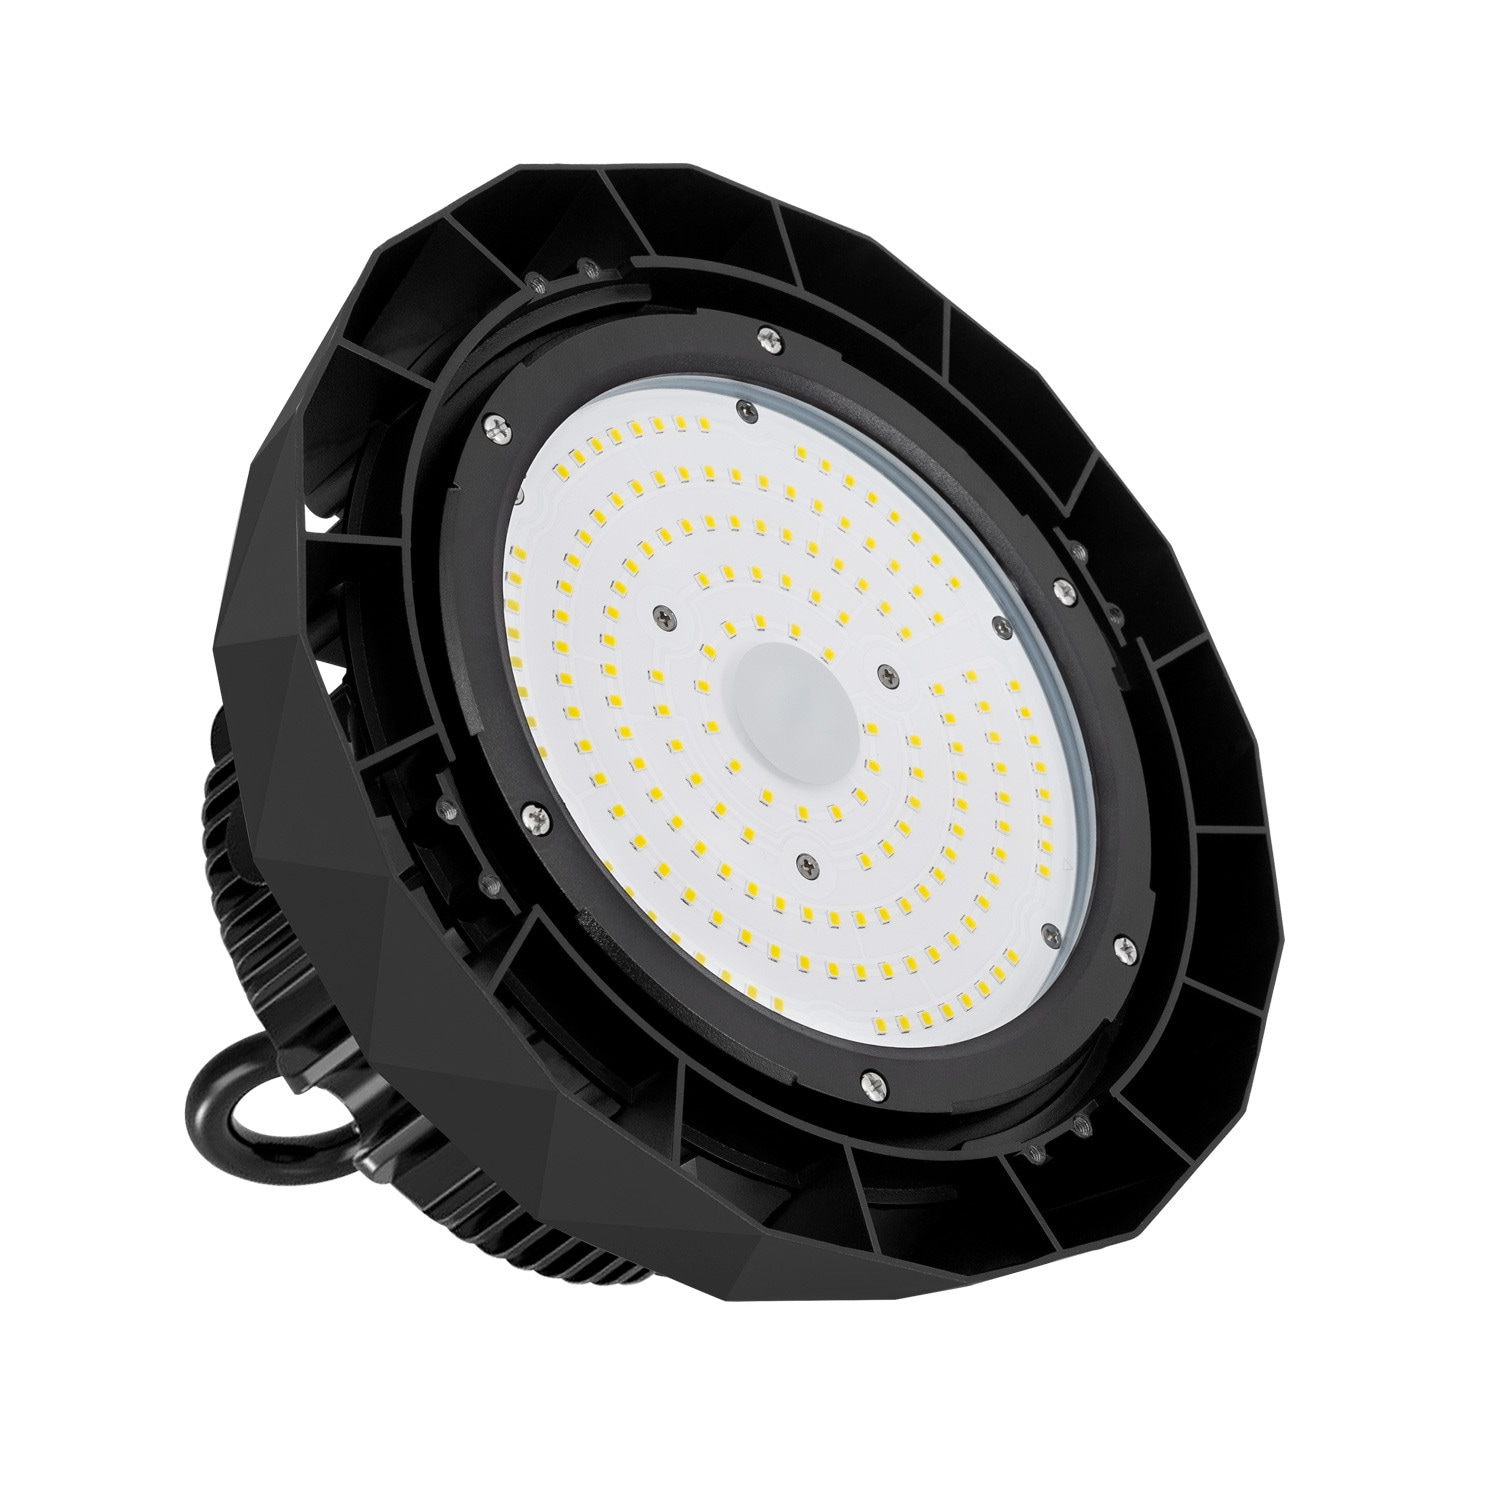 Eclairage Led Batiment Industriel Cloche Led Samsung Ufo 100w 135lm W Lifud Dimmable Ledkia